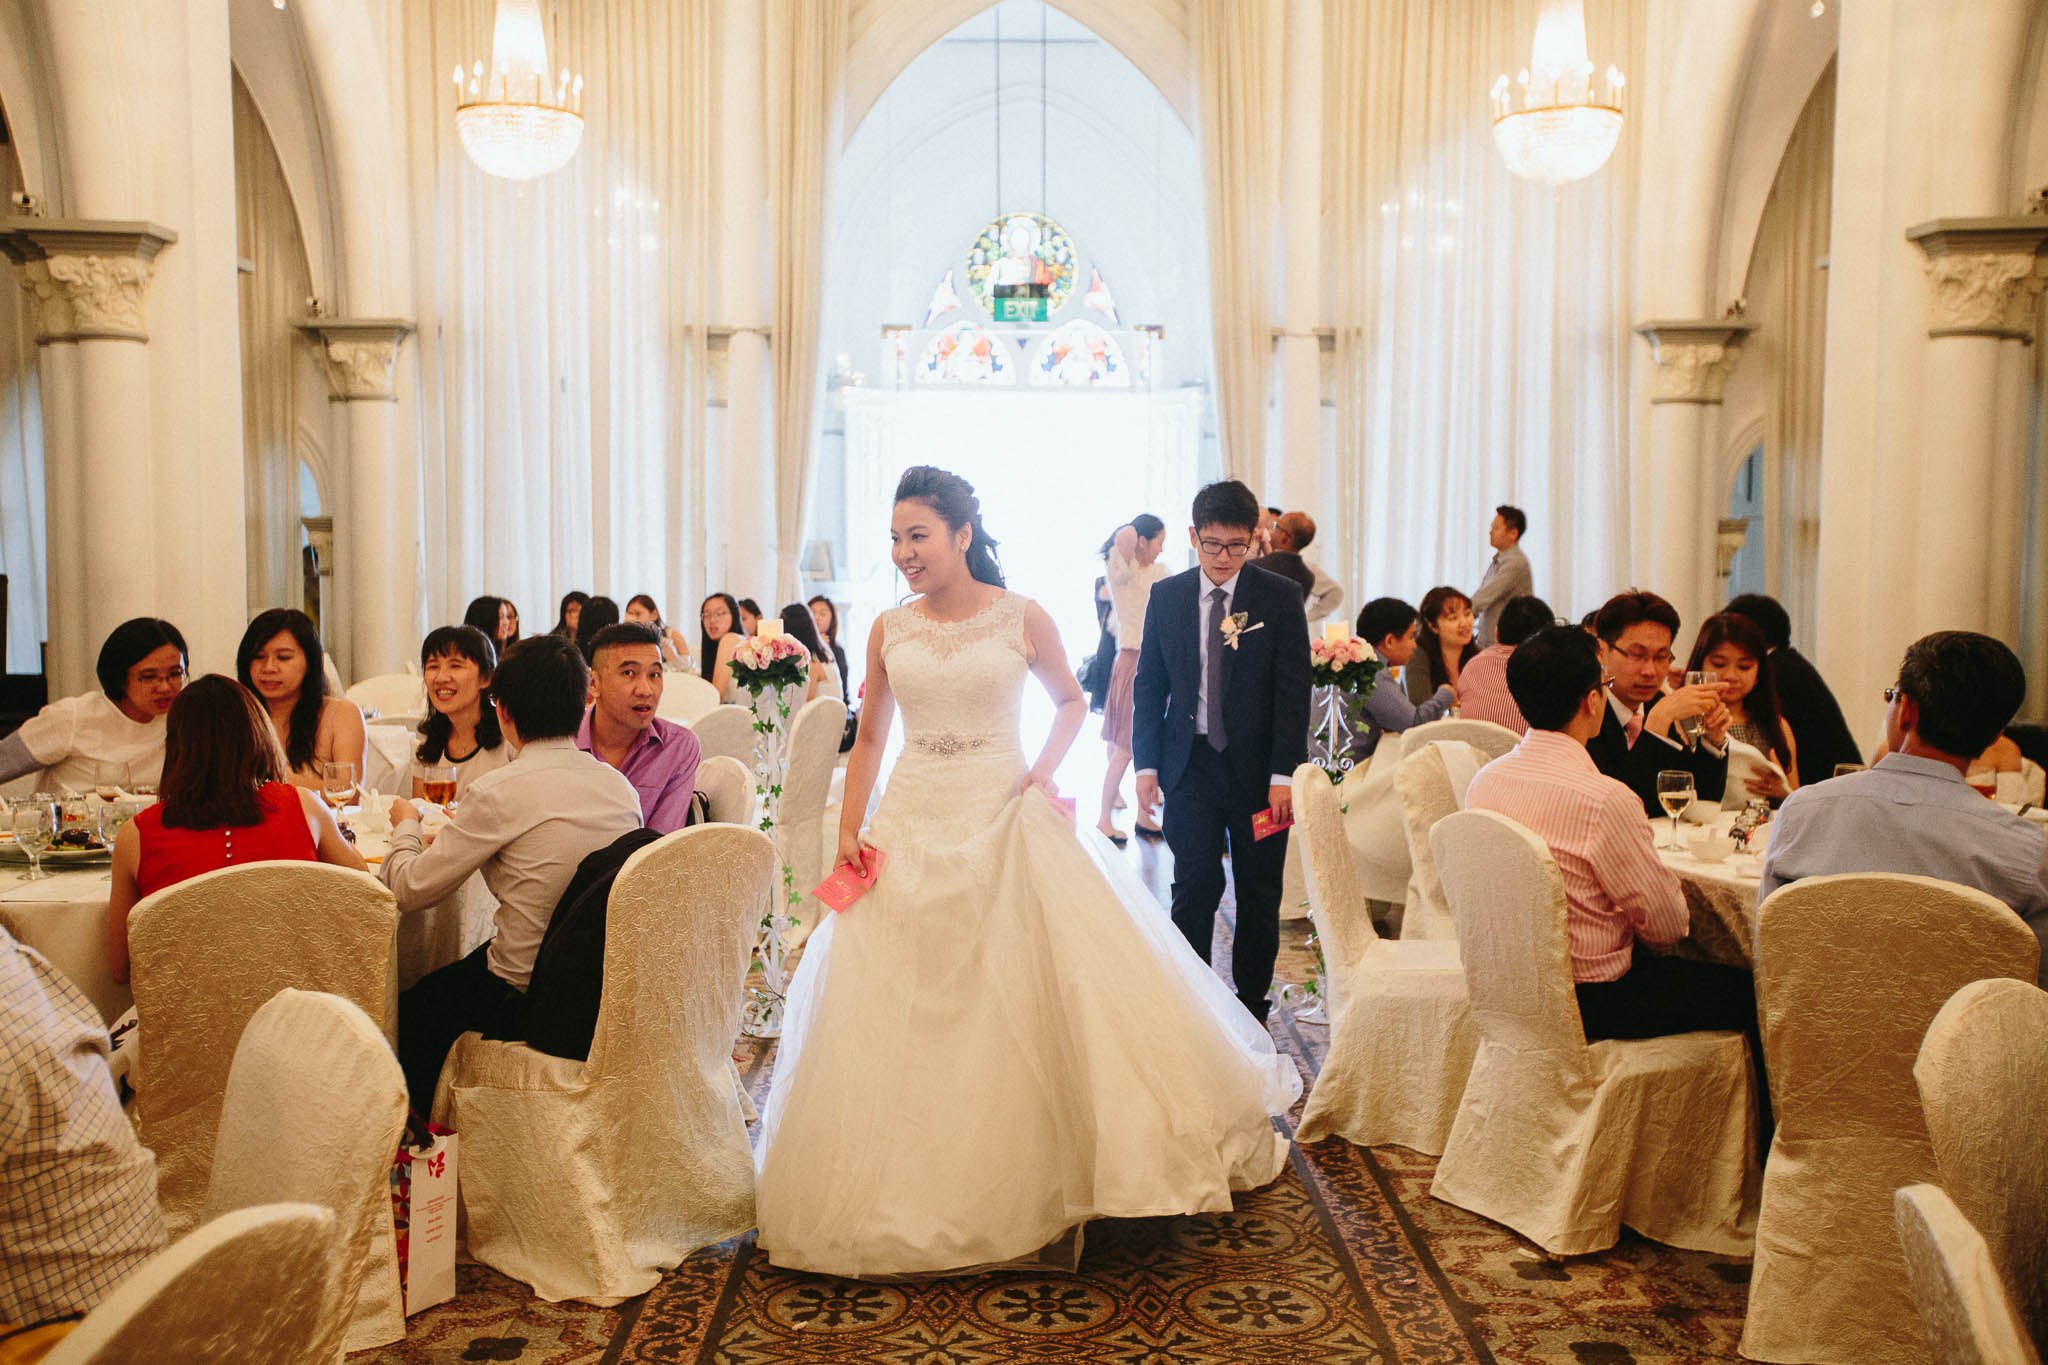 singapore-wedding-photographer-we-made-these-2016-selects-064.jpg